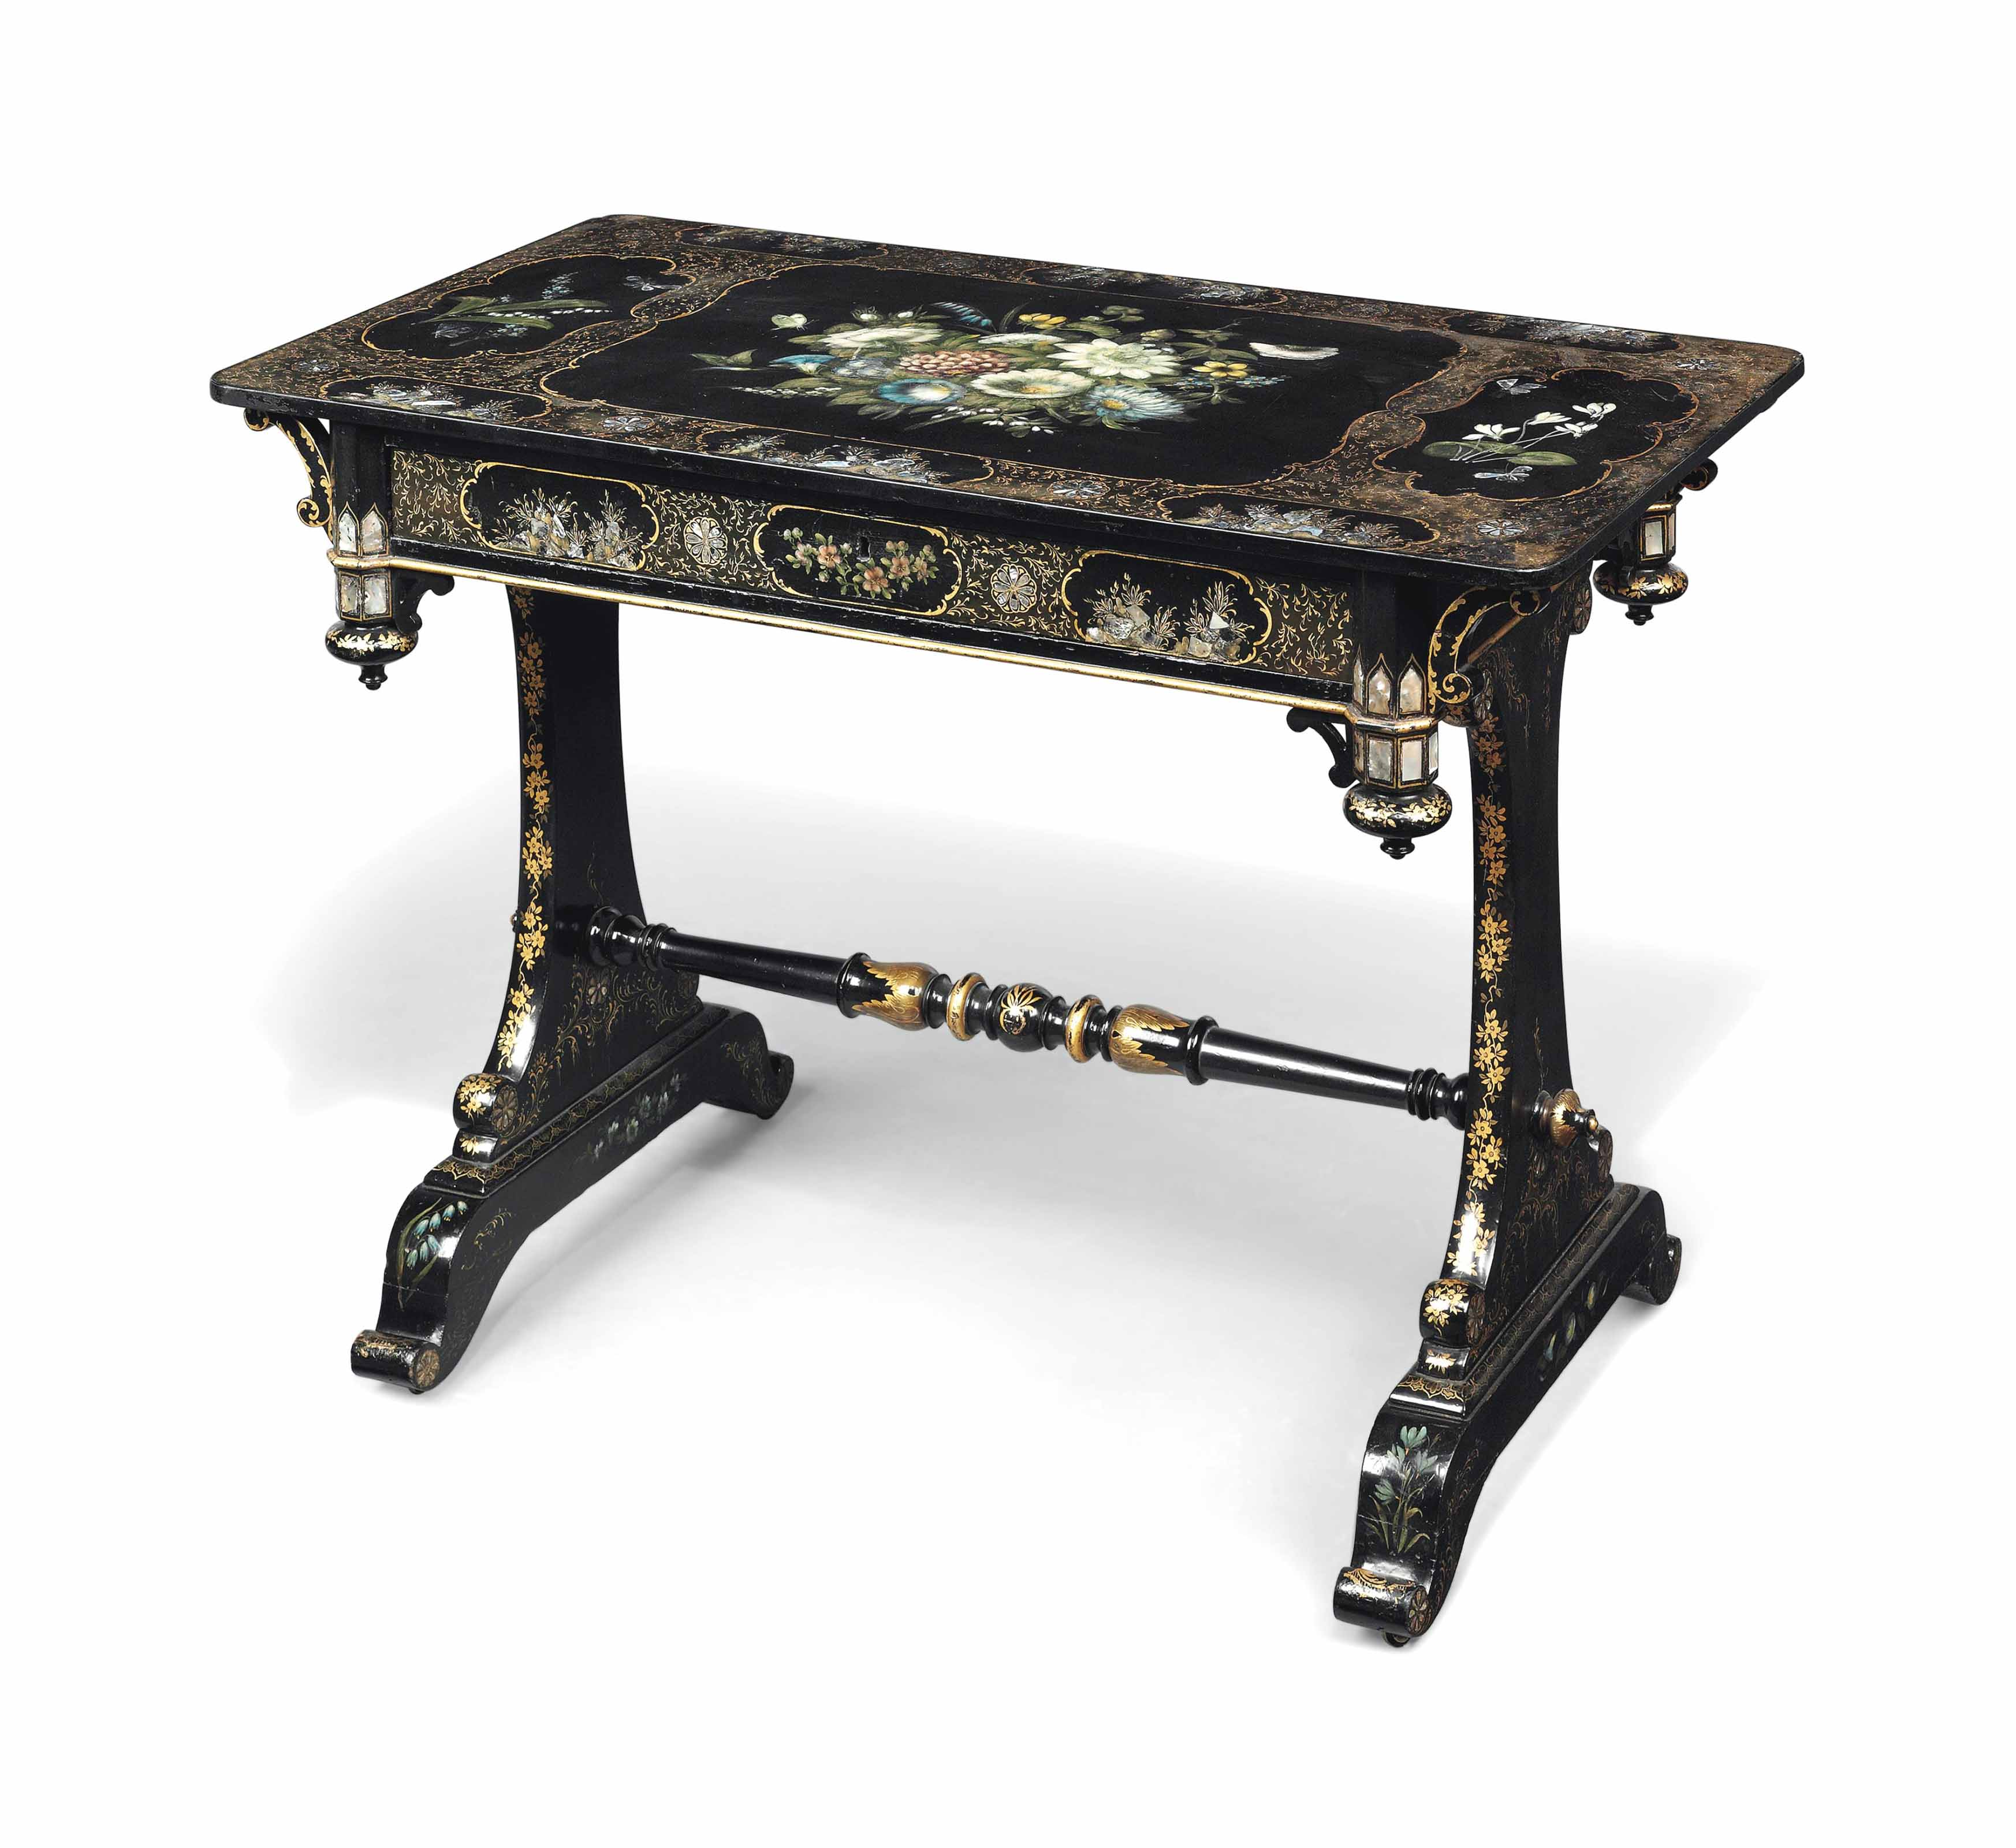 A VICTORIAN POLYCHROME-PAINTED, GILT-DECORATED AND MOTHER-OF-PEARL INLAID SLATE-TOPPED EBONISED SIDE TABLE